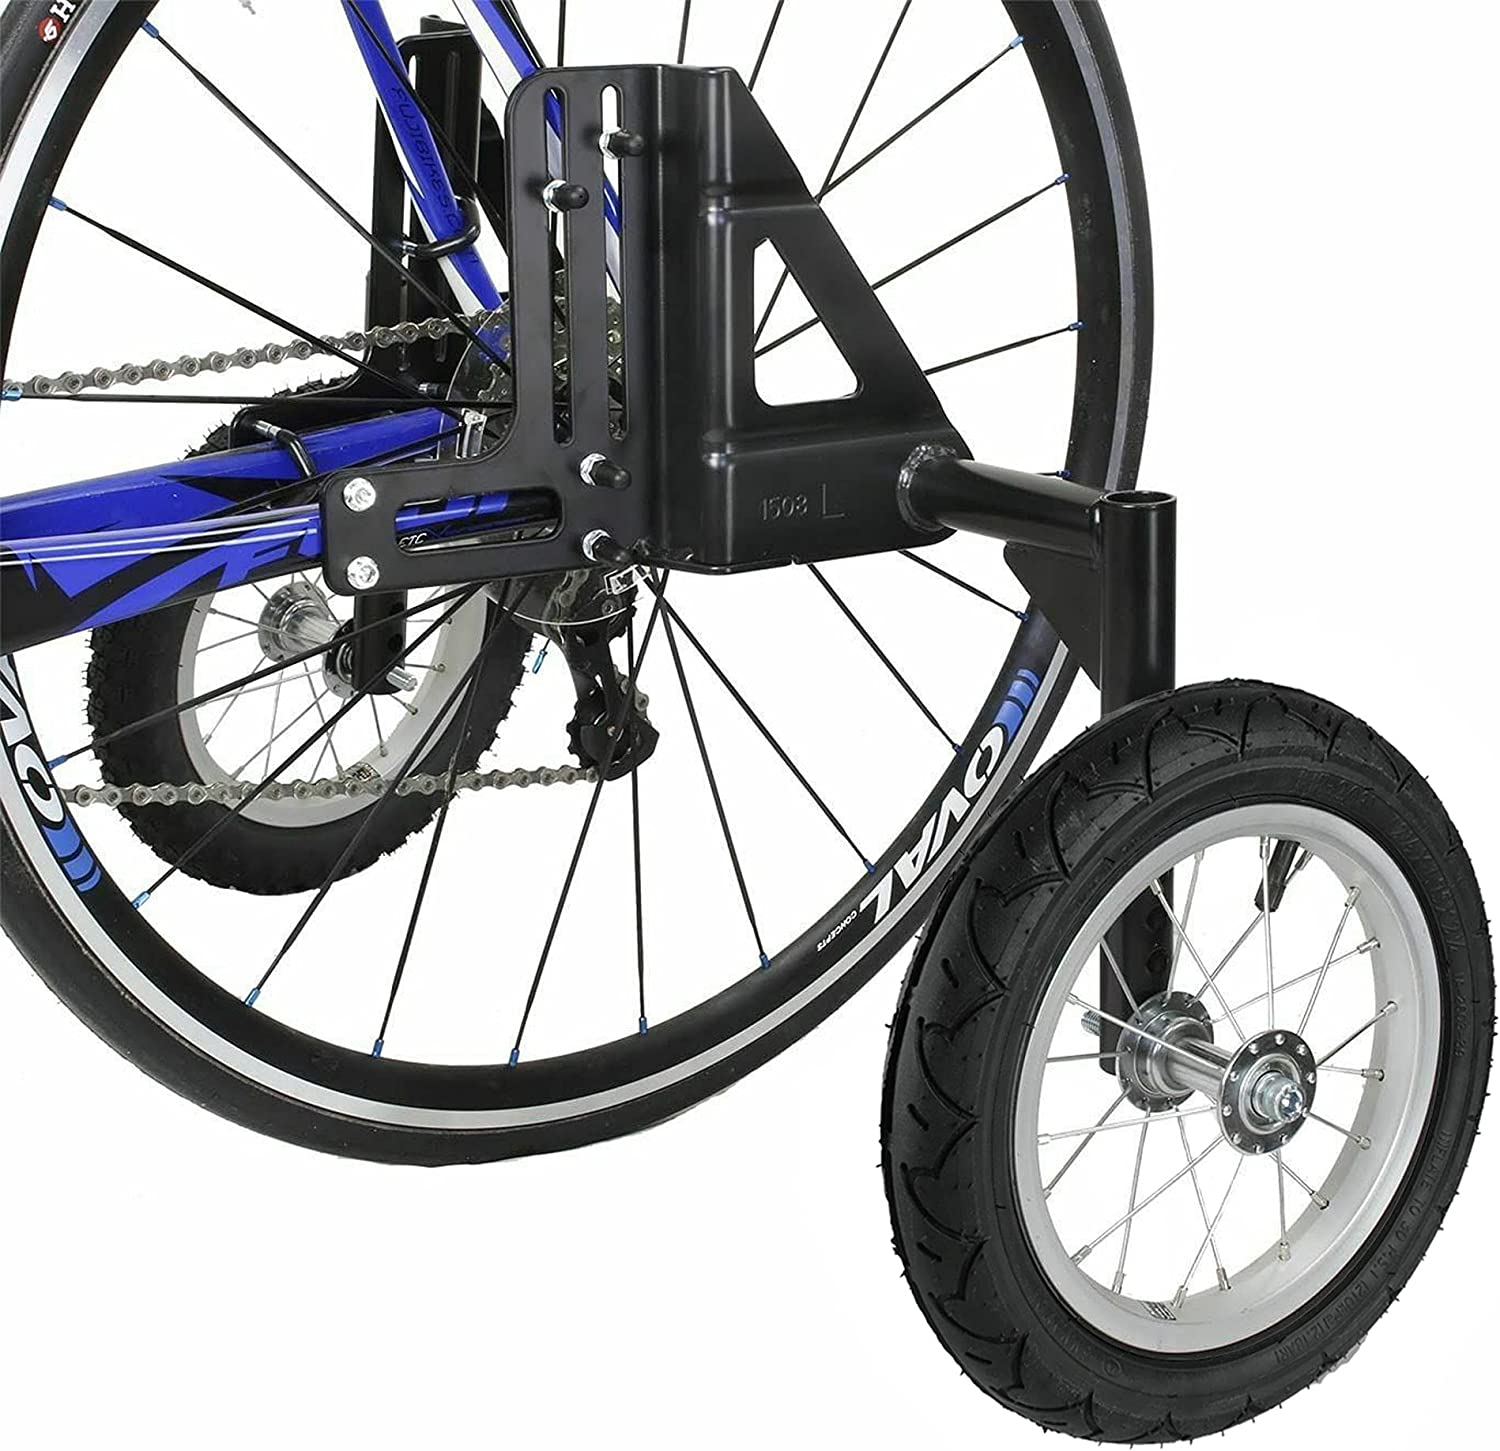 CyclingDeal Adjustable Indefinitely Adult Bicycle Bike W Stabilizers Training Challenge the lowest price of Japan ☆